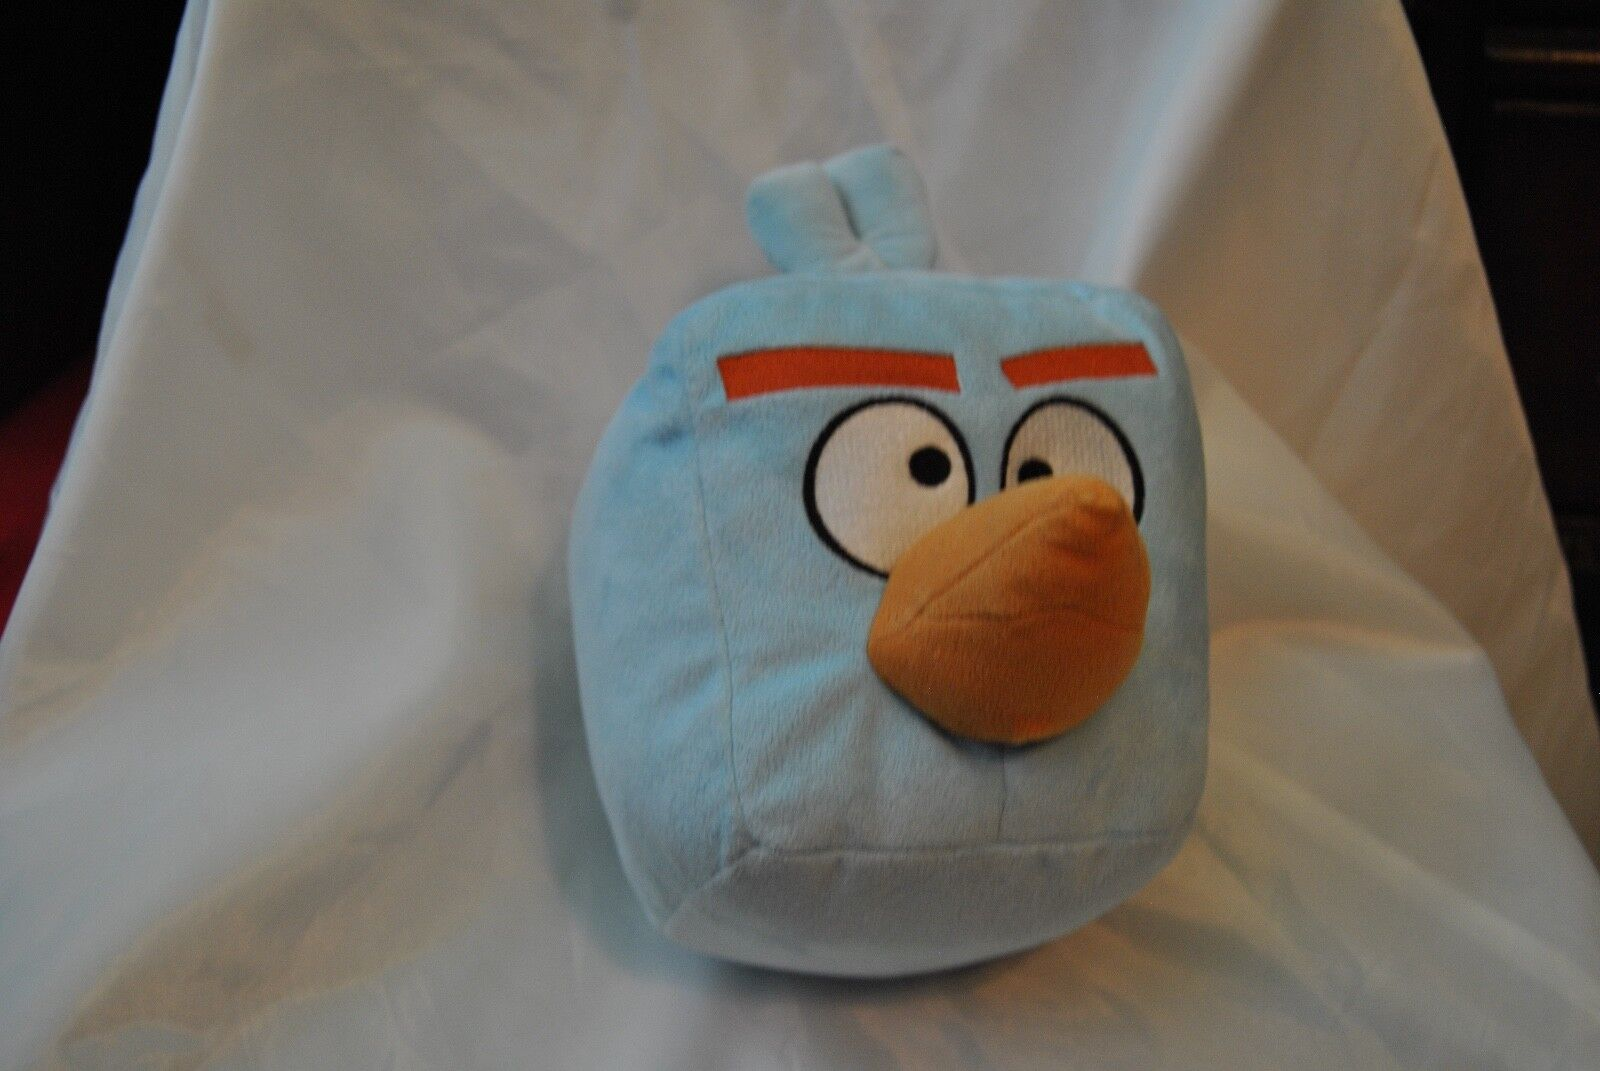 Angry Bird Space Bird Plush Toy Ice Cube with sound